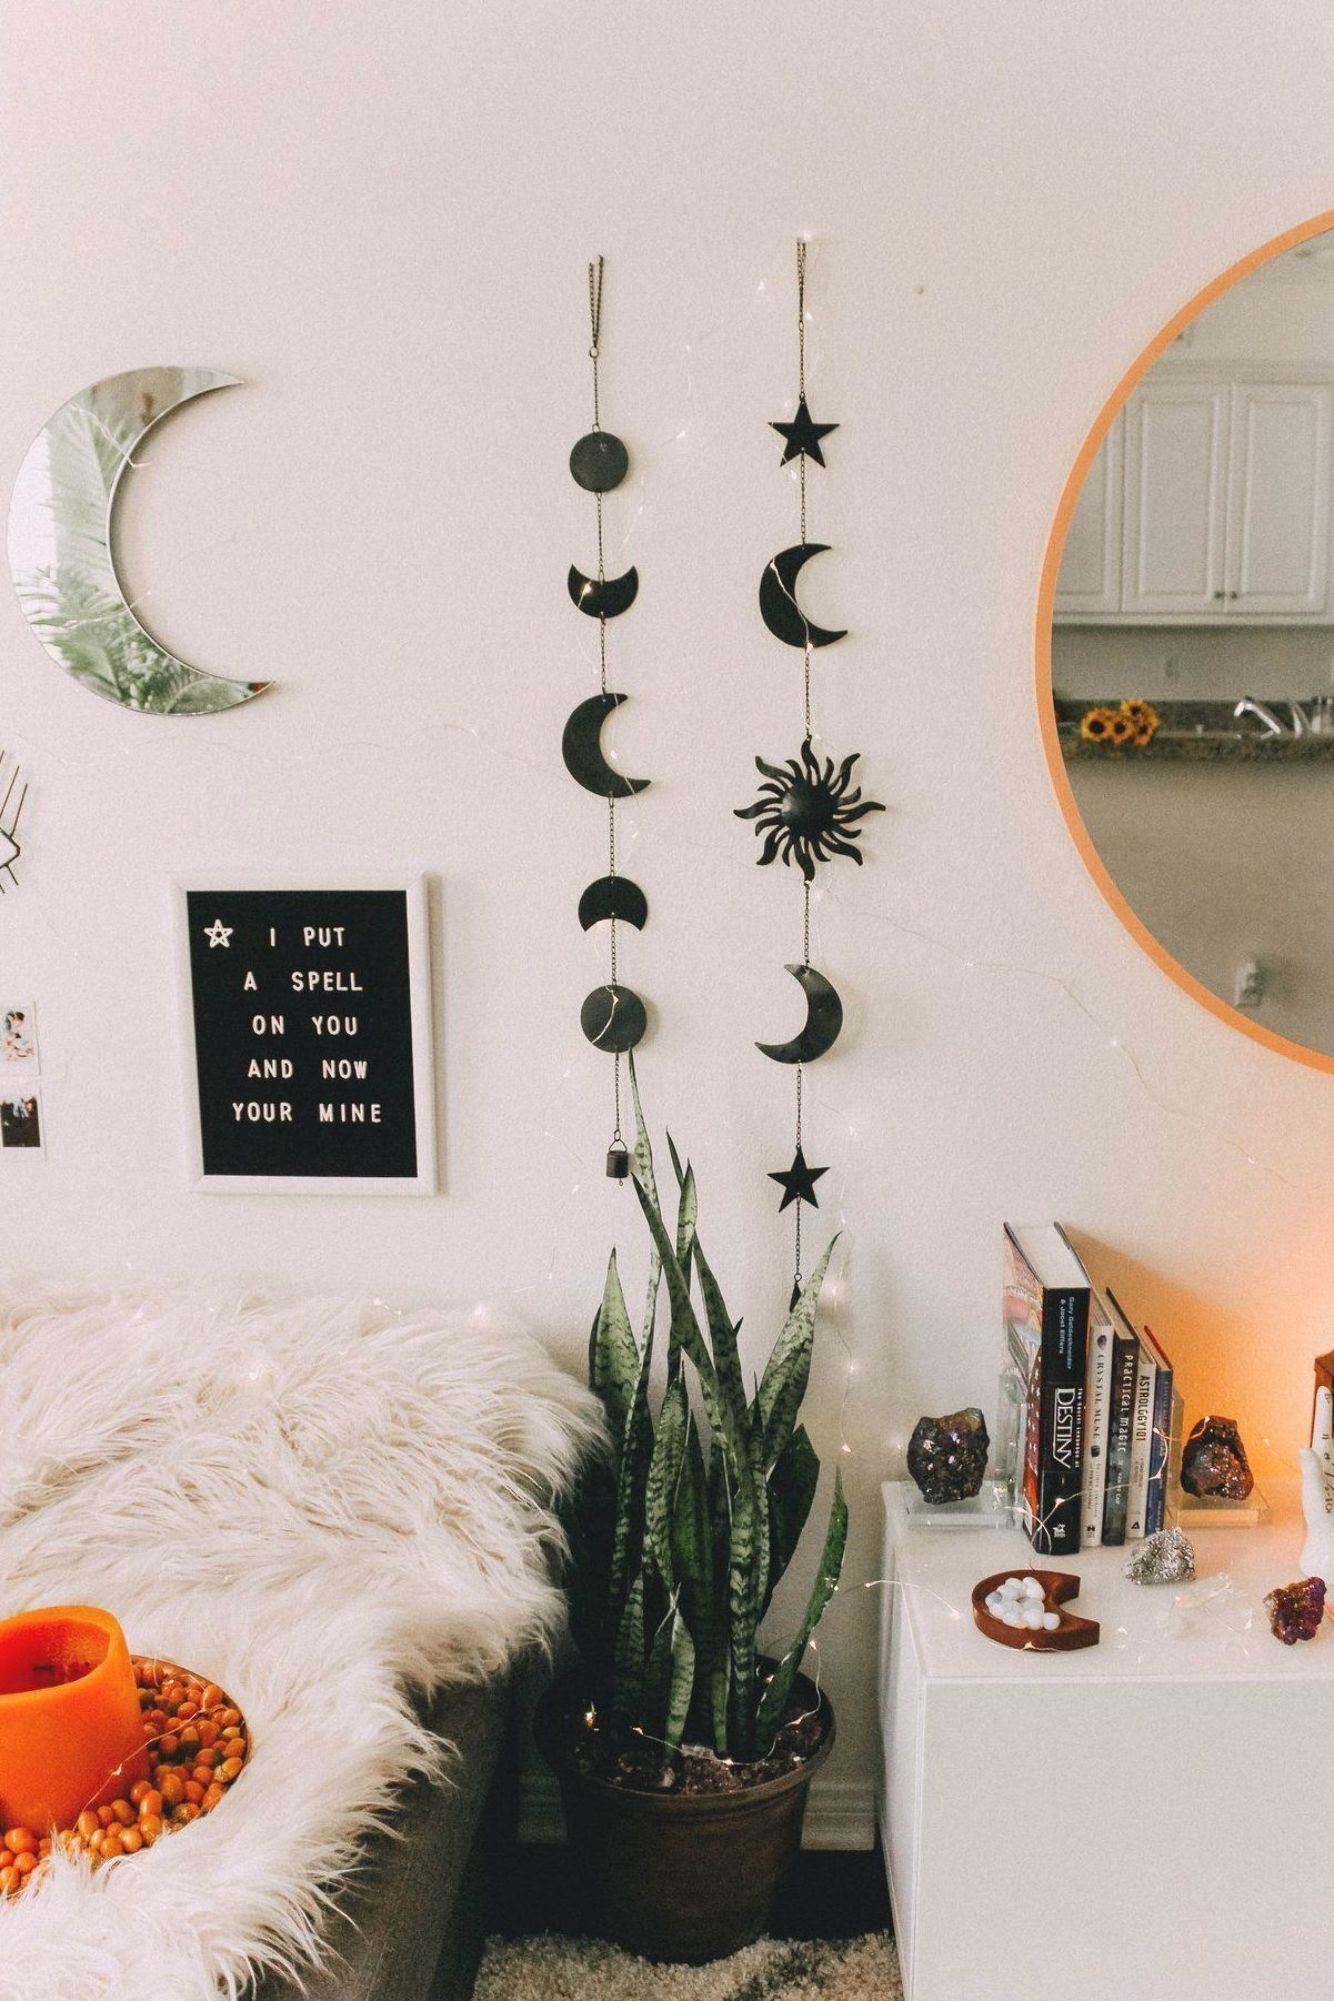 Celestial Sun And Moon Wall Hanging Decor In 2020 Cute Room Decor Bedroom Vintage Bedroom Decor